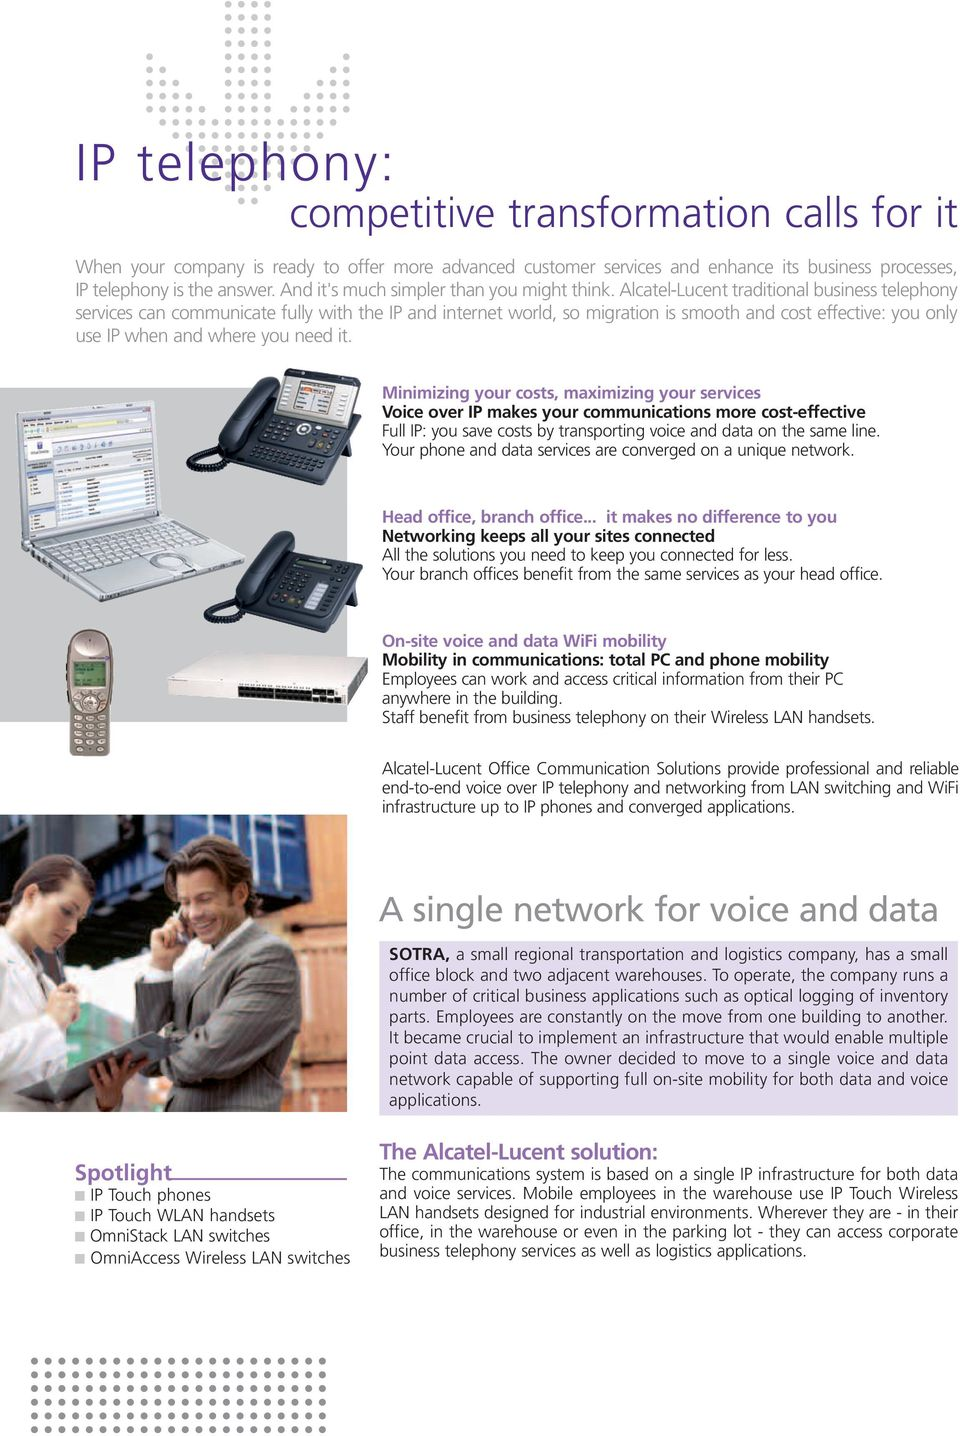 Alcatel-Lucent traditional business telephony services can communicate fully with the IP and internet world, so migration is smooth and cost effective: you only use IP when and where you need it.